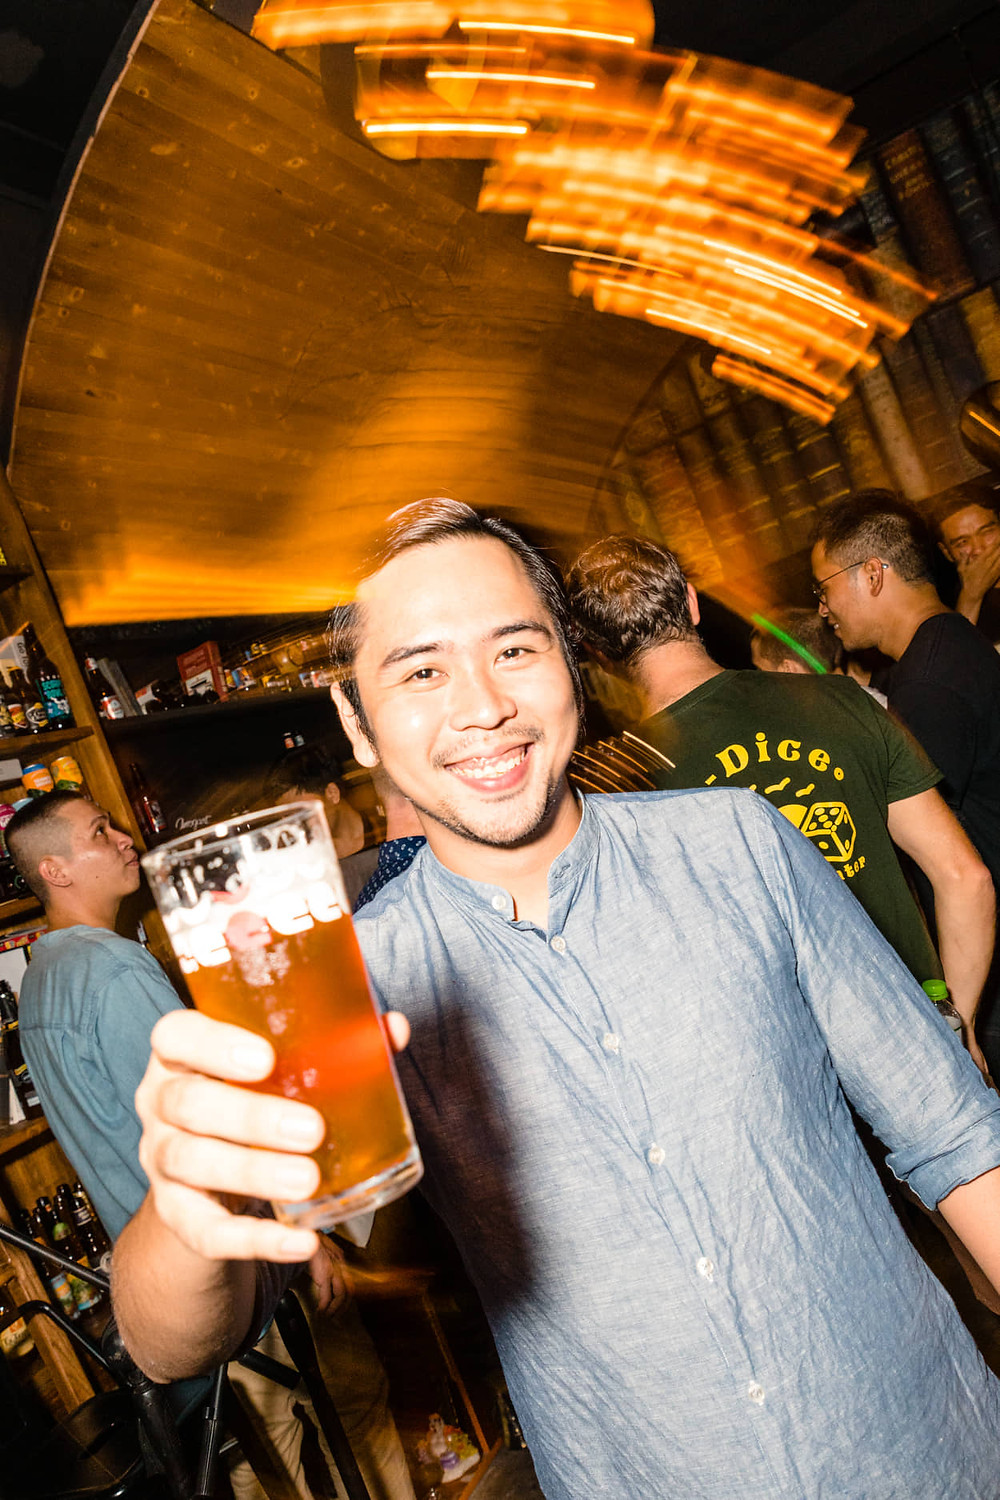 Hoprizon founder Phuc Tran hopes his beers encourage people to pursue their dreams